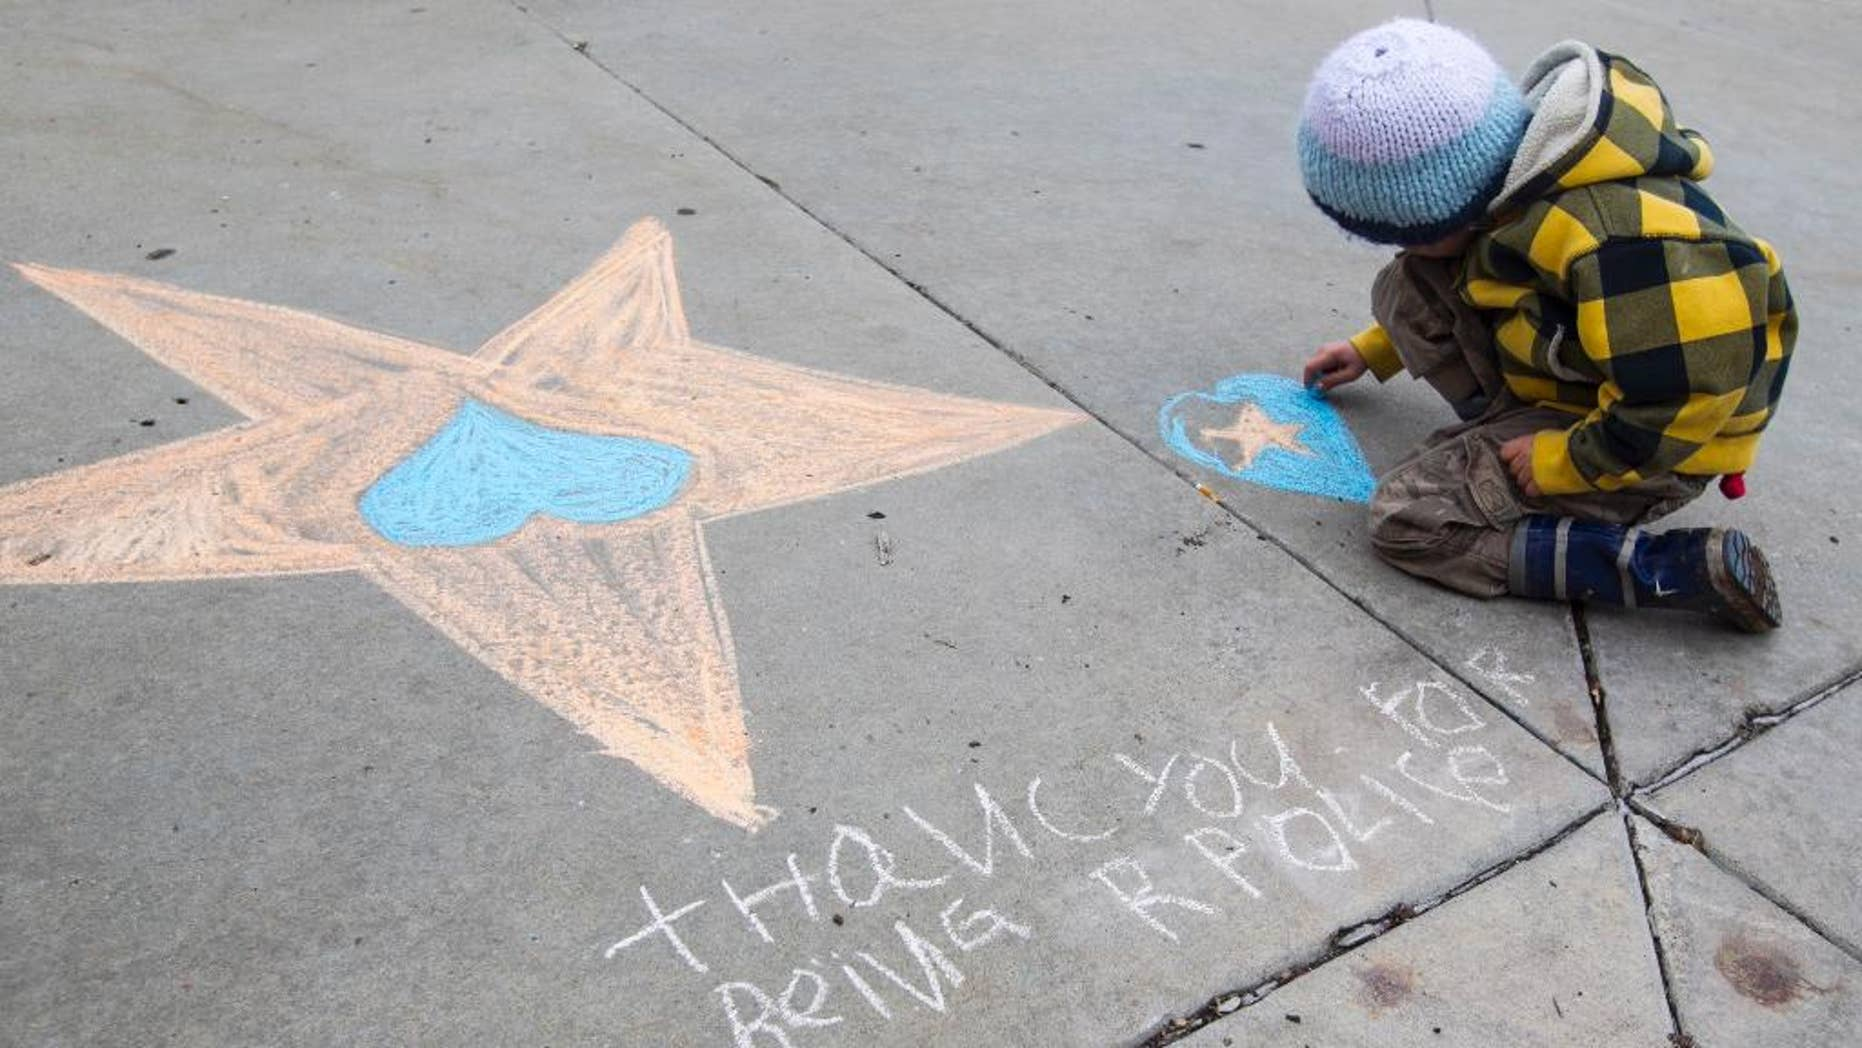 """Caspian Carpenter, 5, draws a star with a heart and words that say """"Thank you for being R police"""" Sunday, Dec. 28, 2014, at the Flagstaff Police Department a day after officer Tyler Stewart was shot and killed in Flagstaff, Ariz.  (AP Photo/The Arizona Republic, Patrick Breen)"""